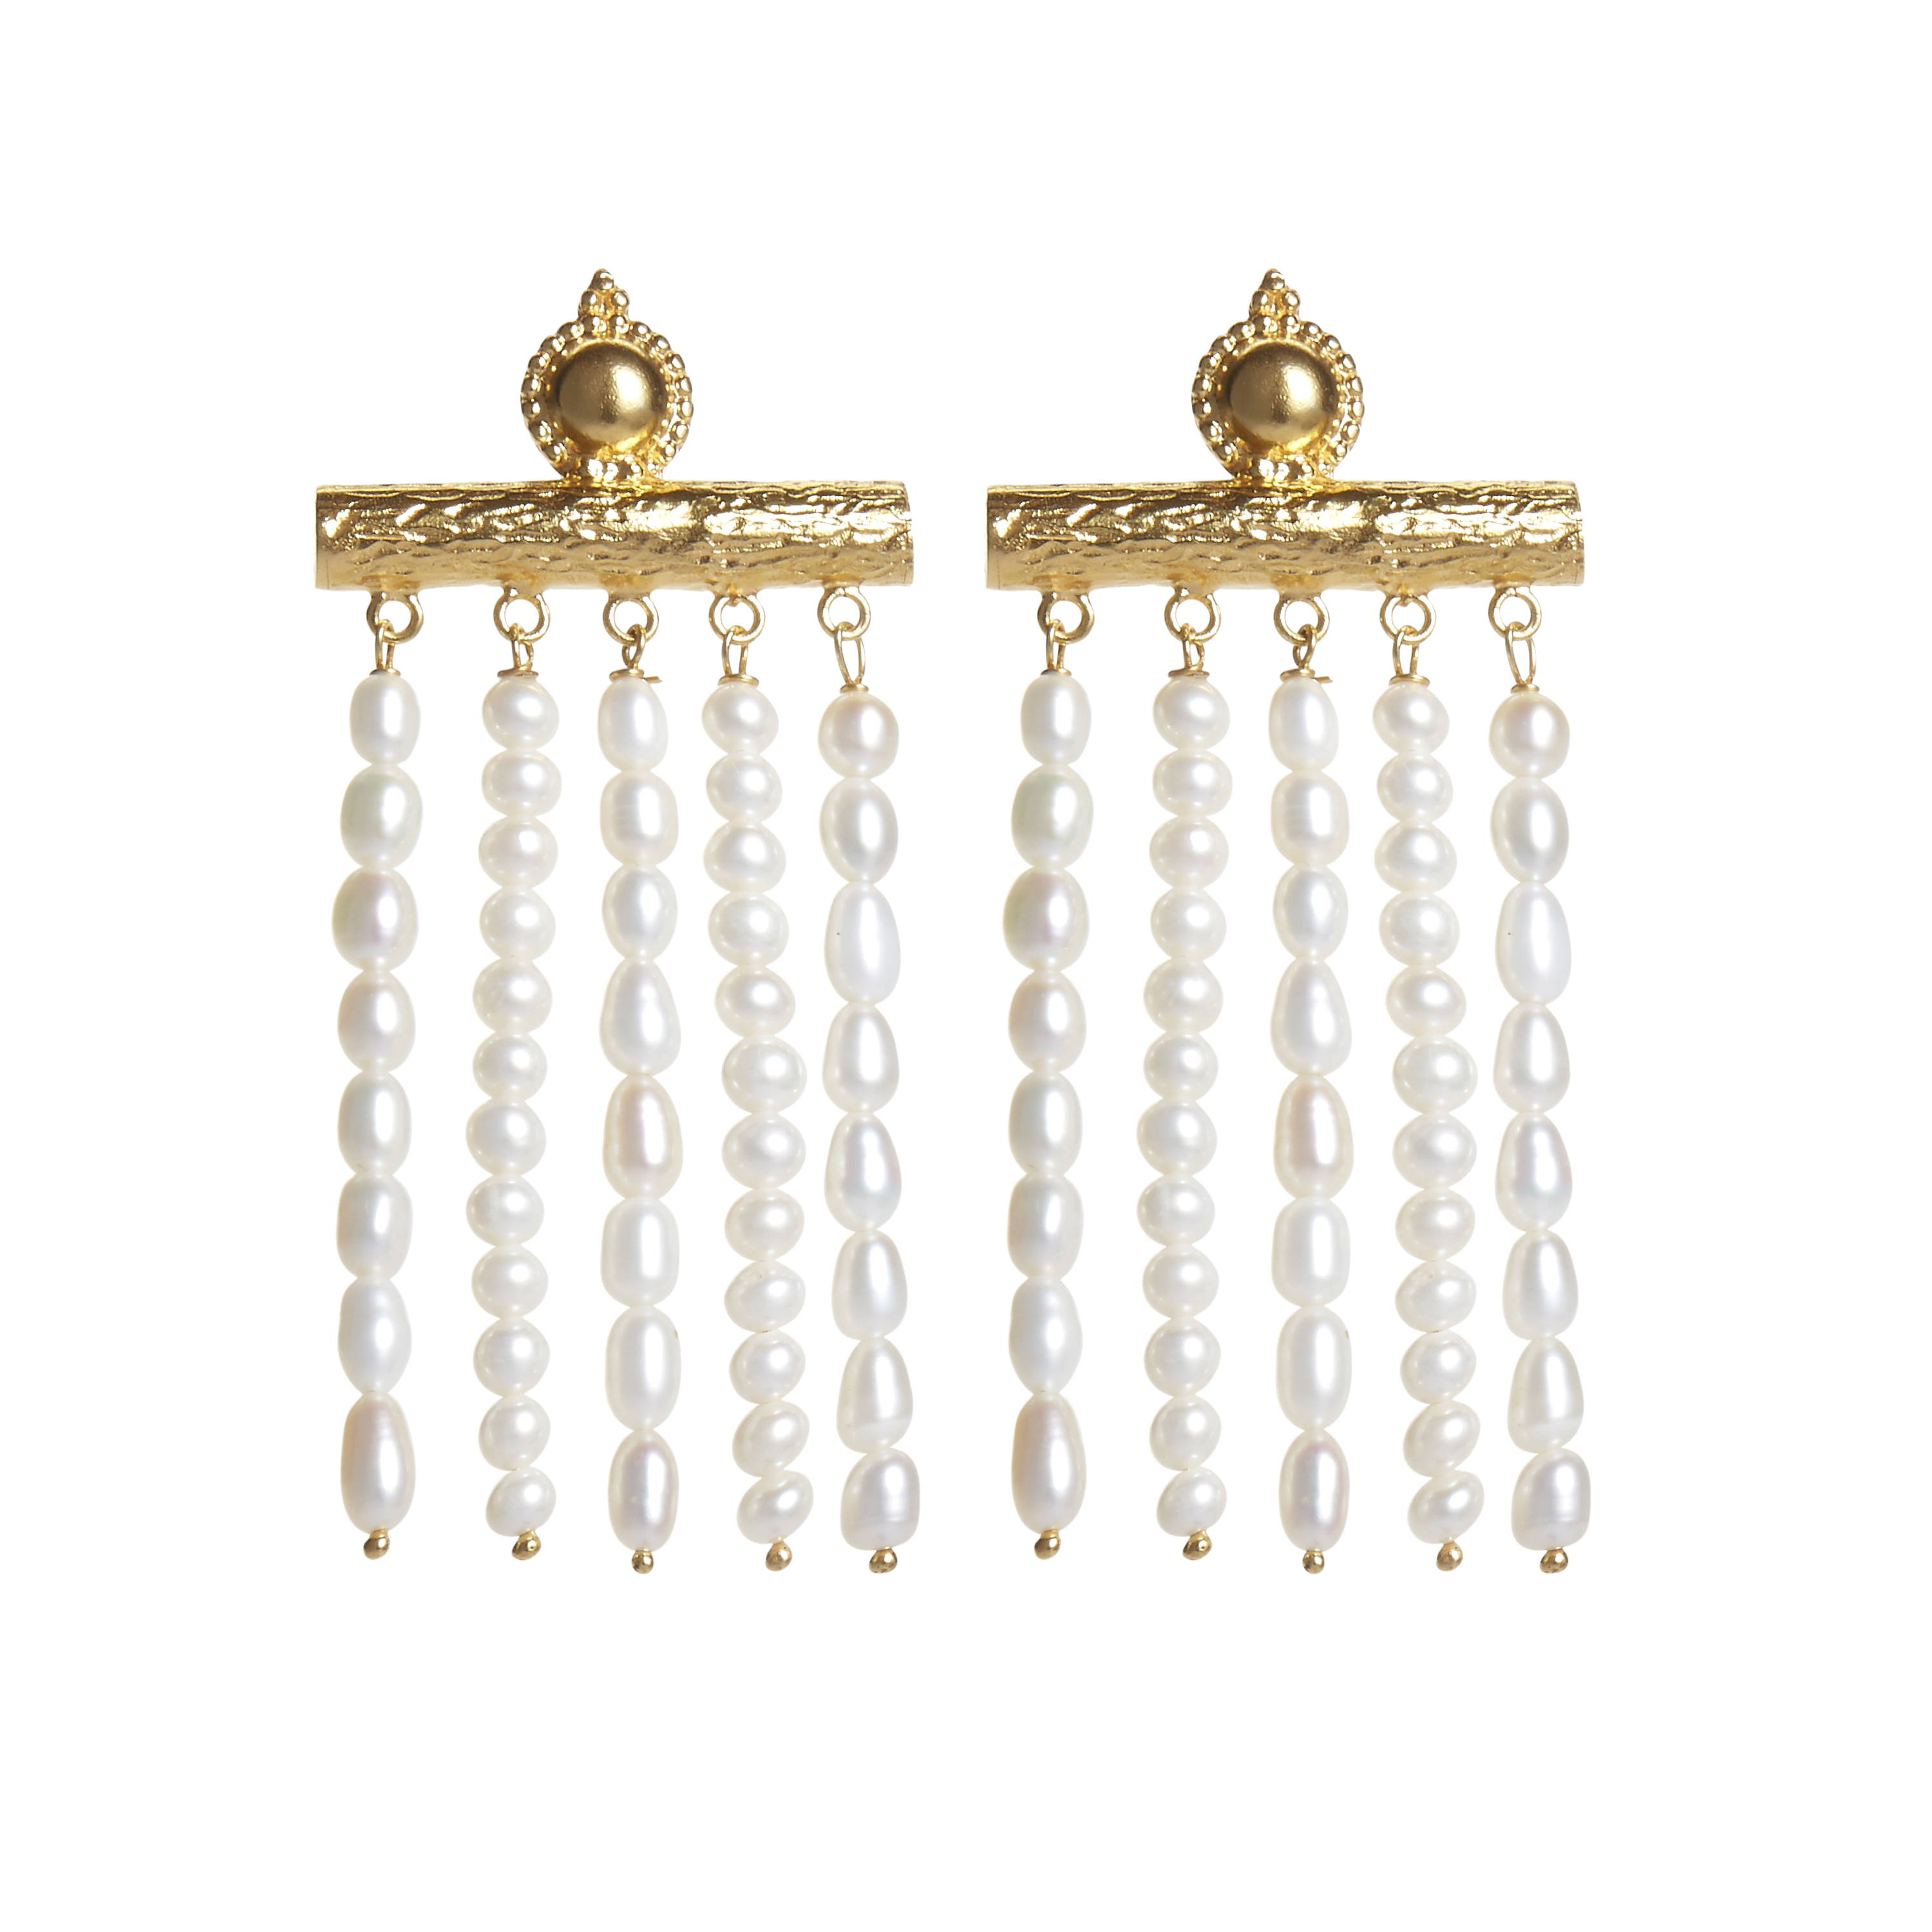 SORU jewellery juno earrings, soru on Stella front cover, soru pearl earrings